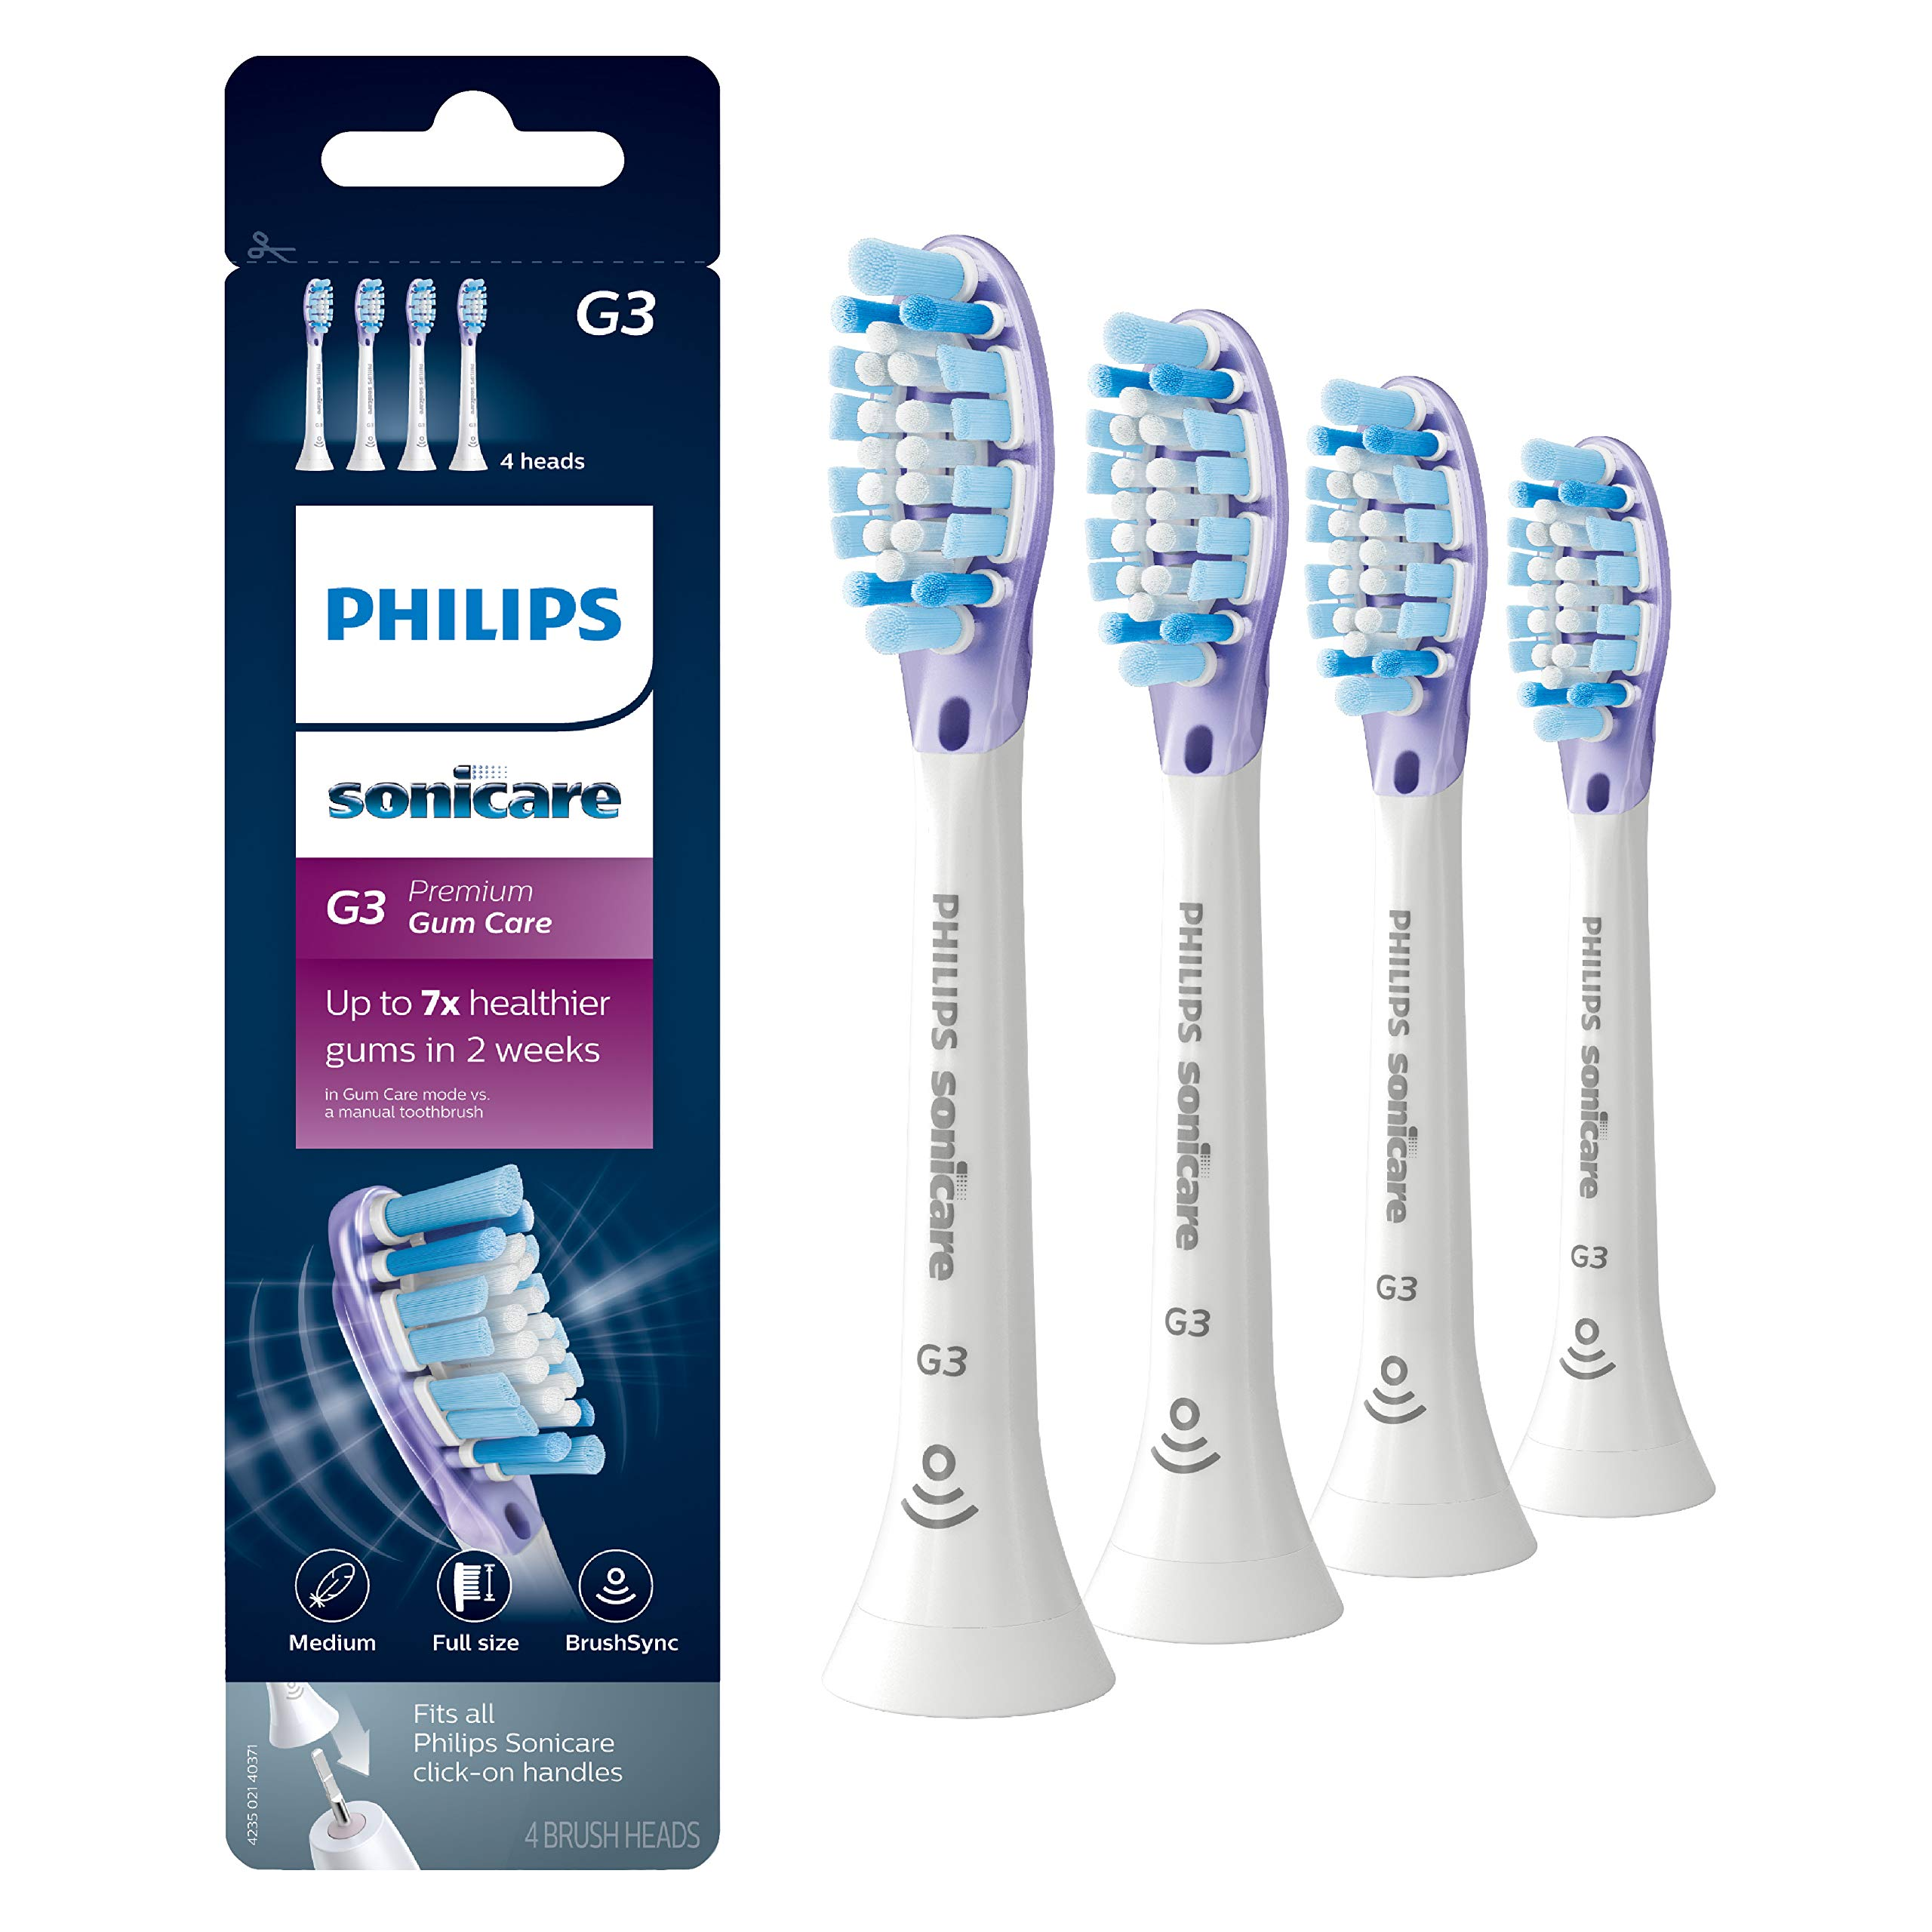 Genuine Philips Sonicare G3 Premium Gum Care toothbrush head, HX9054/65, 4-pk, white by Philips Sonicare